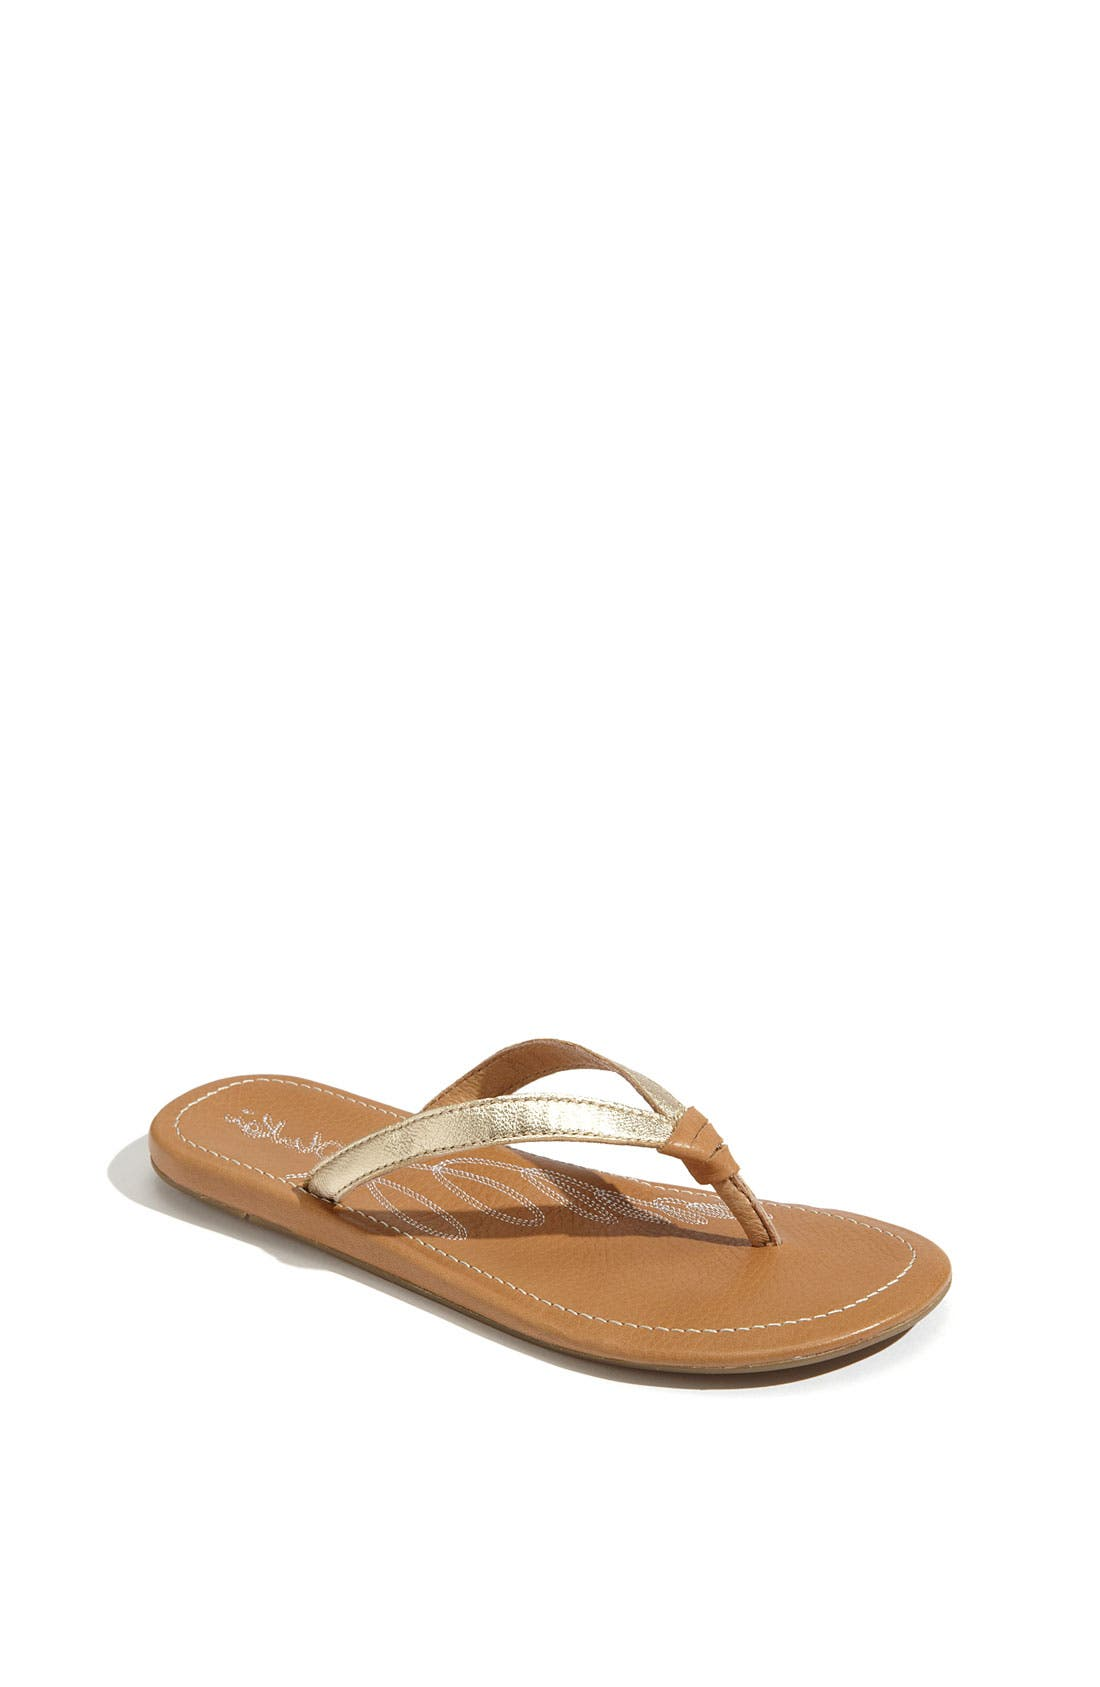 Alternate Image 1 Selected - OluKai 'Ulala' Flip Flop (Toddler, Little Kid & Big Kid)